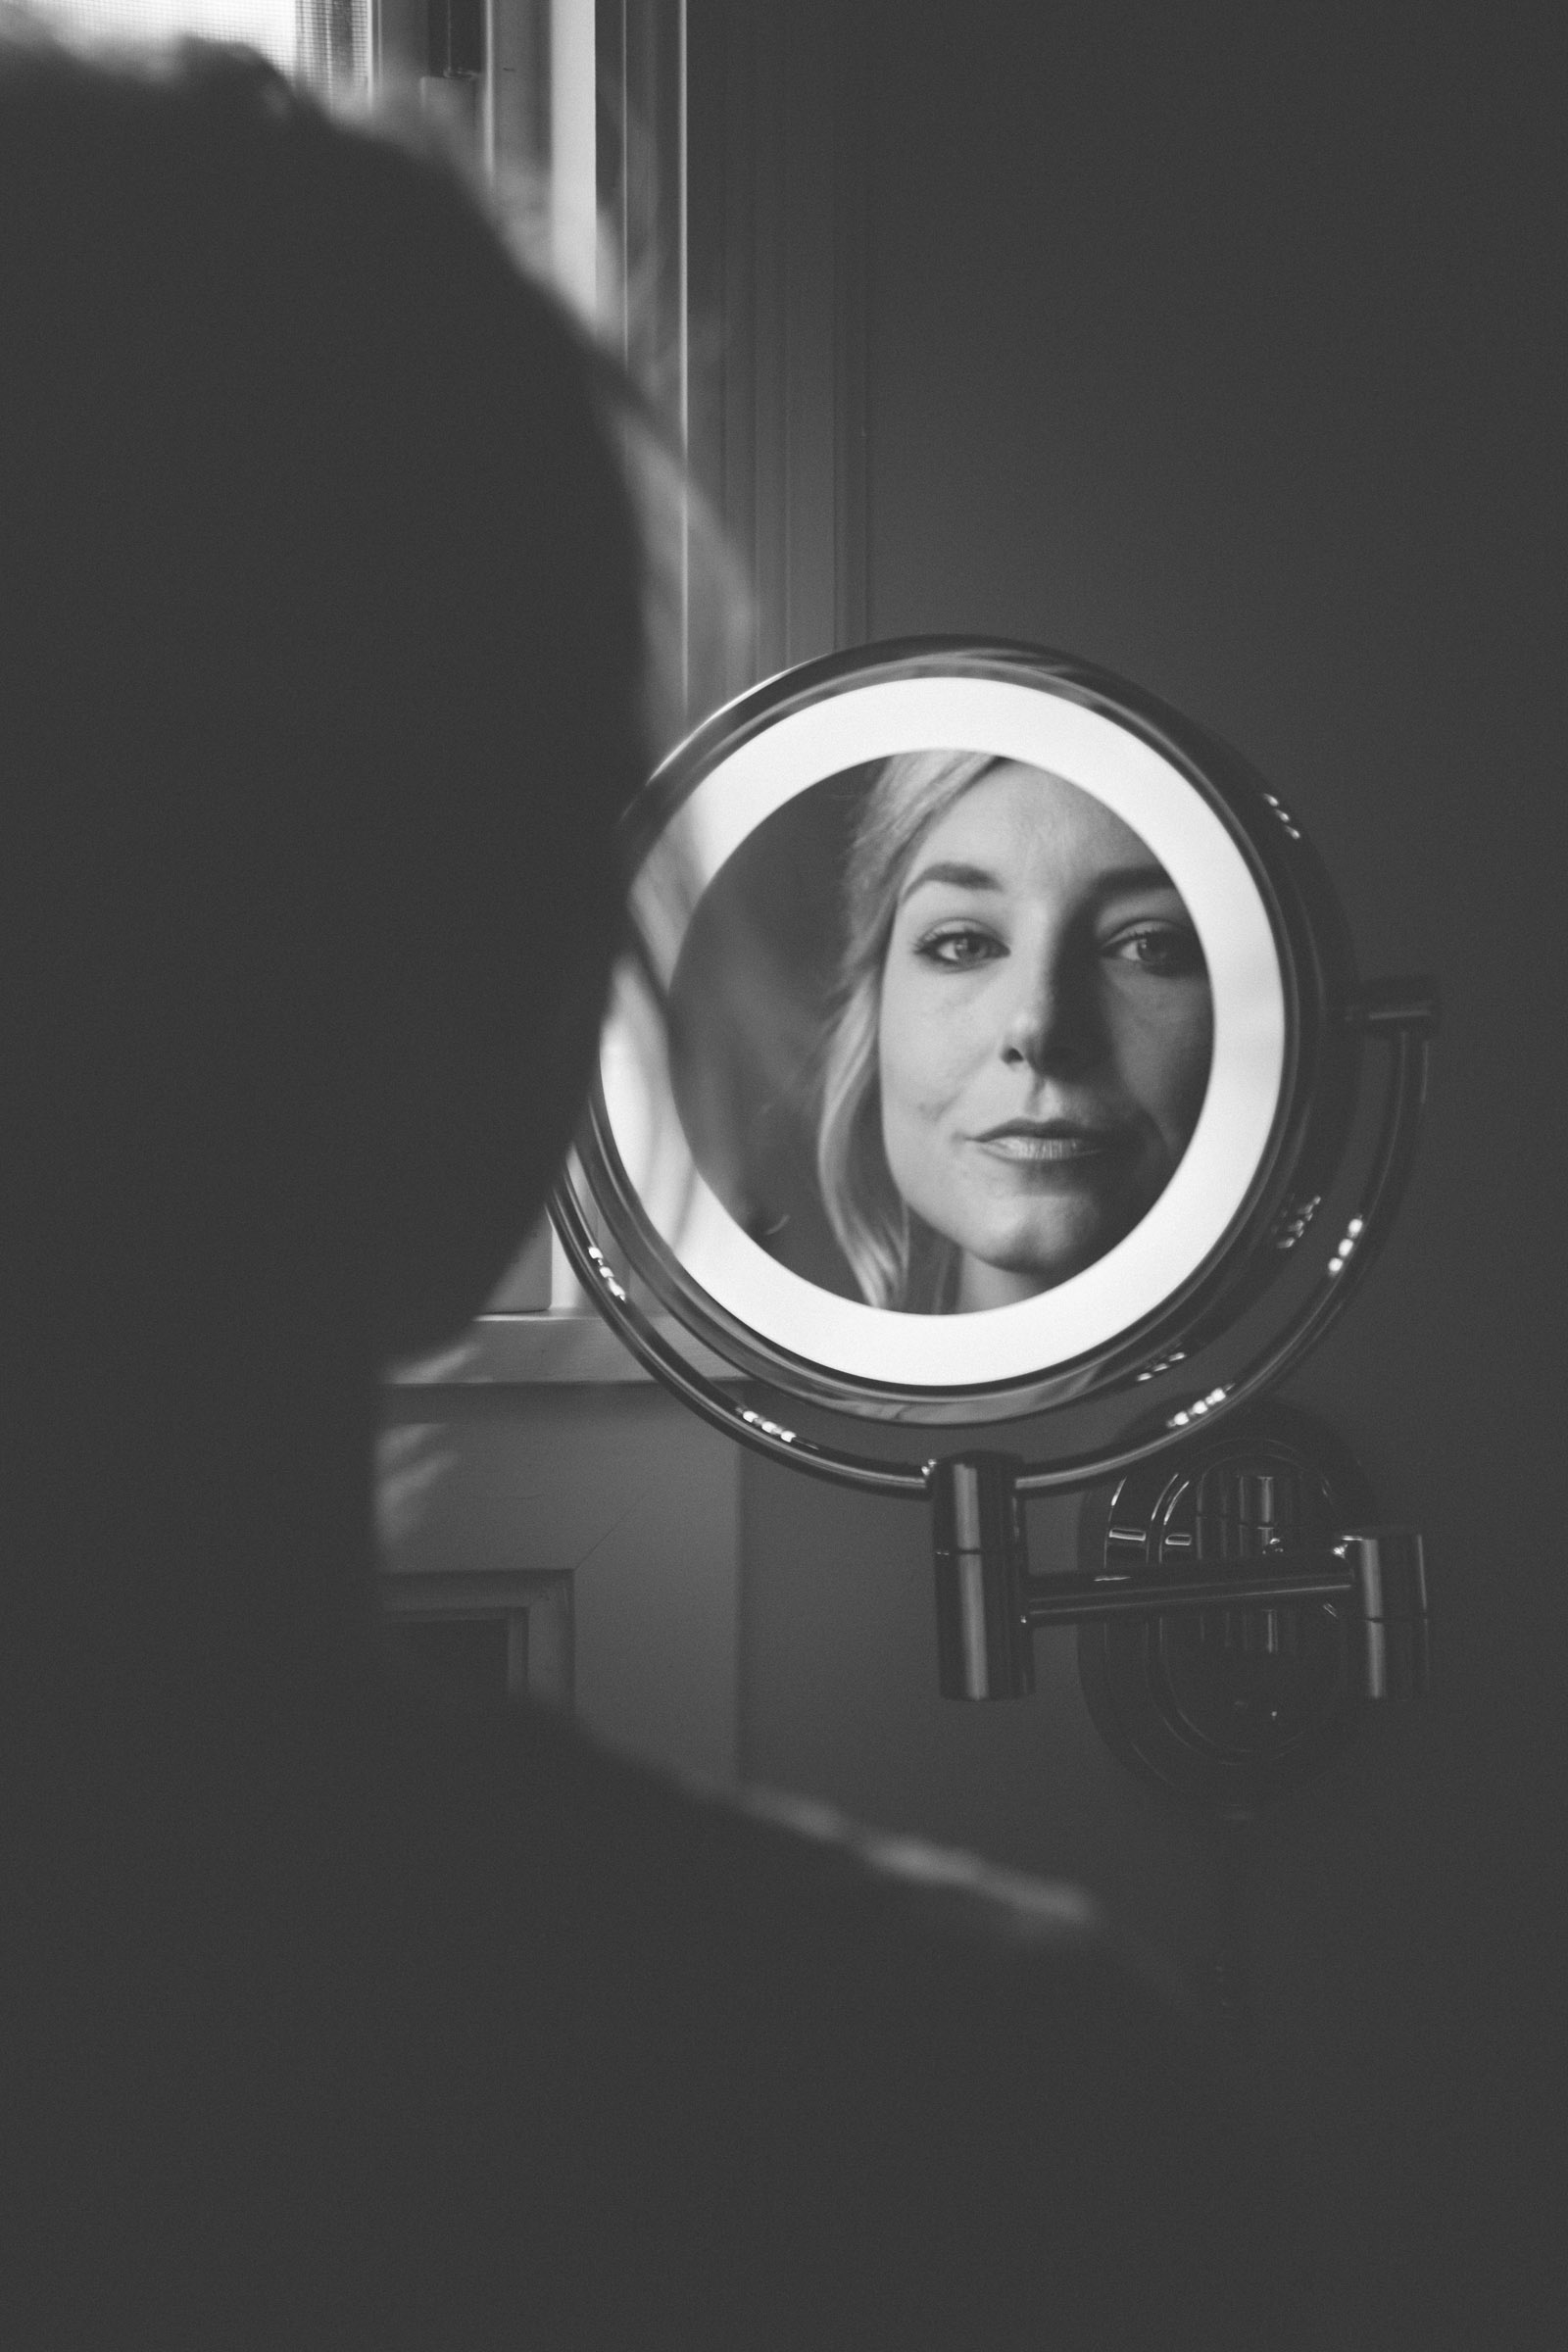 012-abstract-beautiful-bride-in-fron-of-mirror-getting-ready